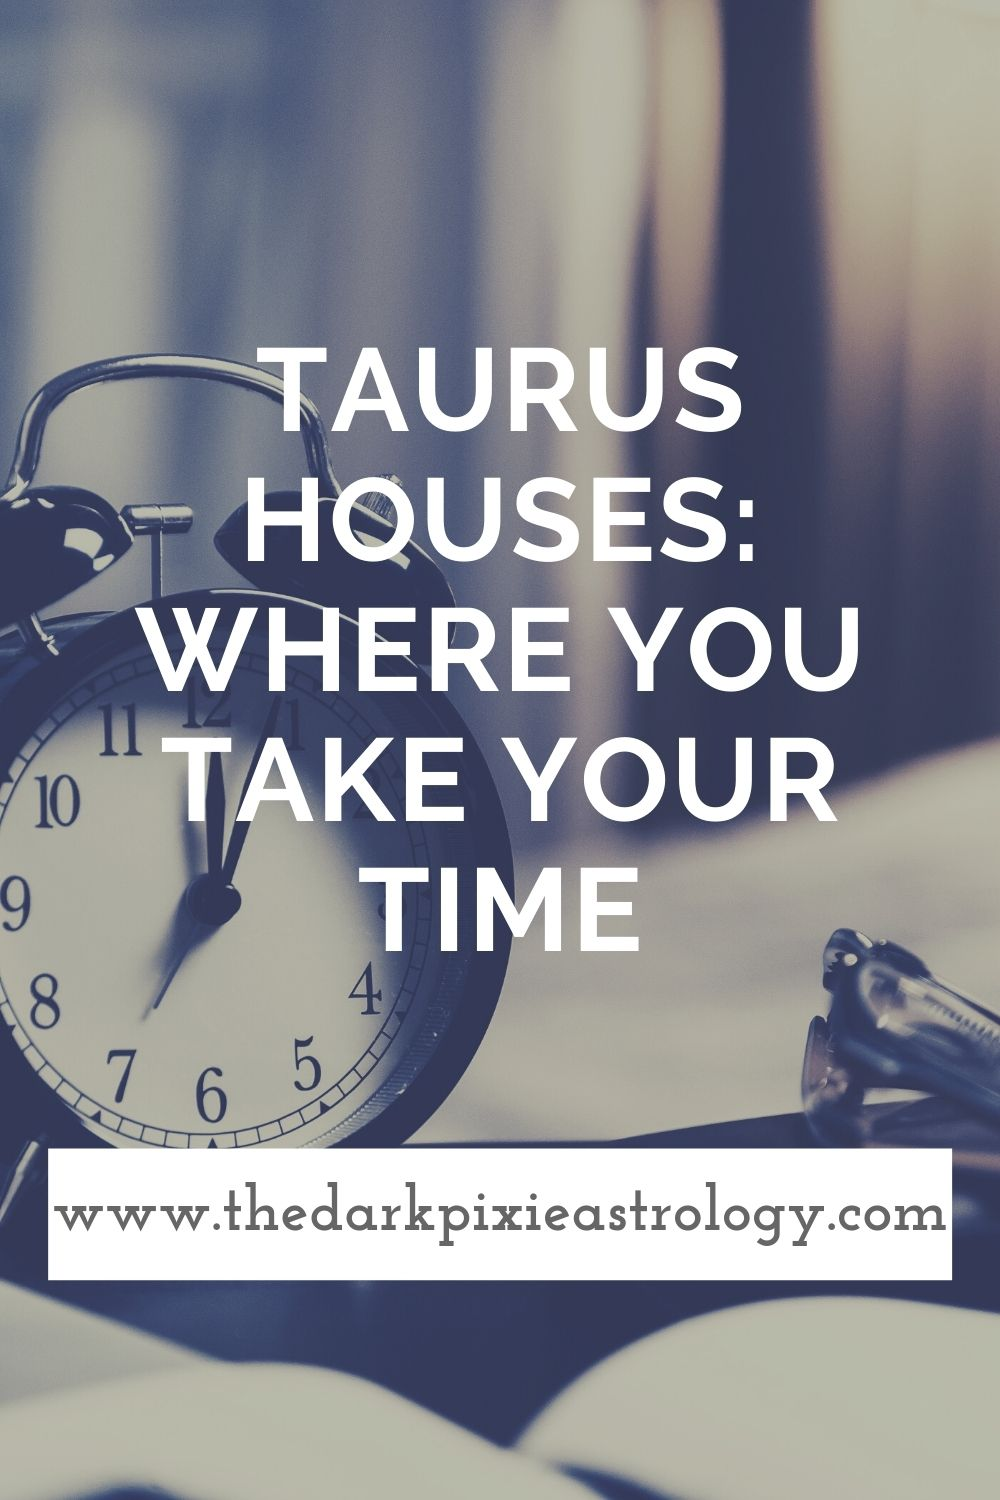 Taurus Houses: Where You Take Your Time - The Dark Pixie Astrology